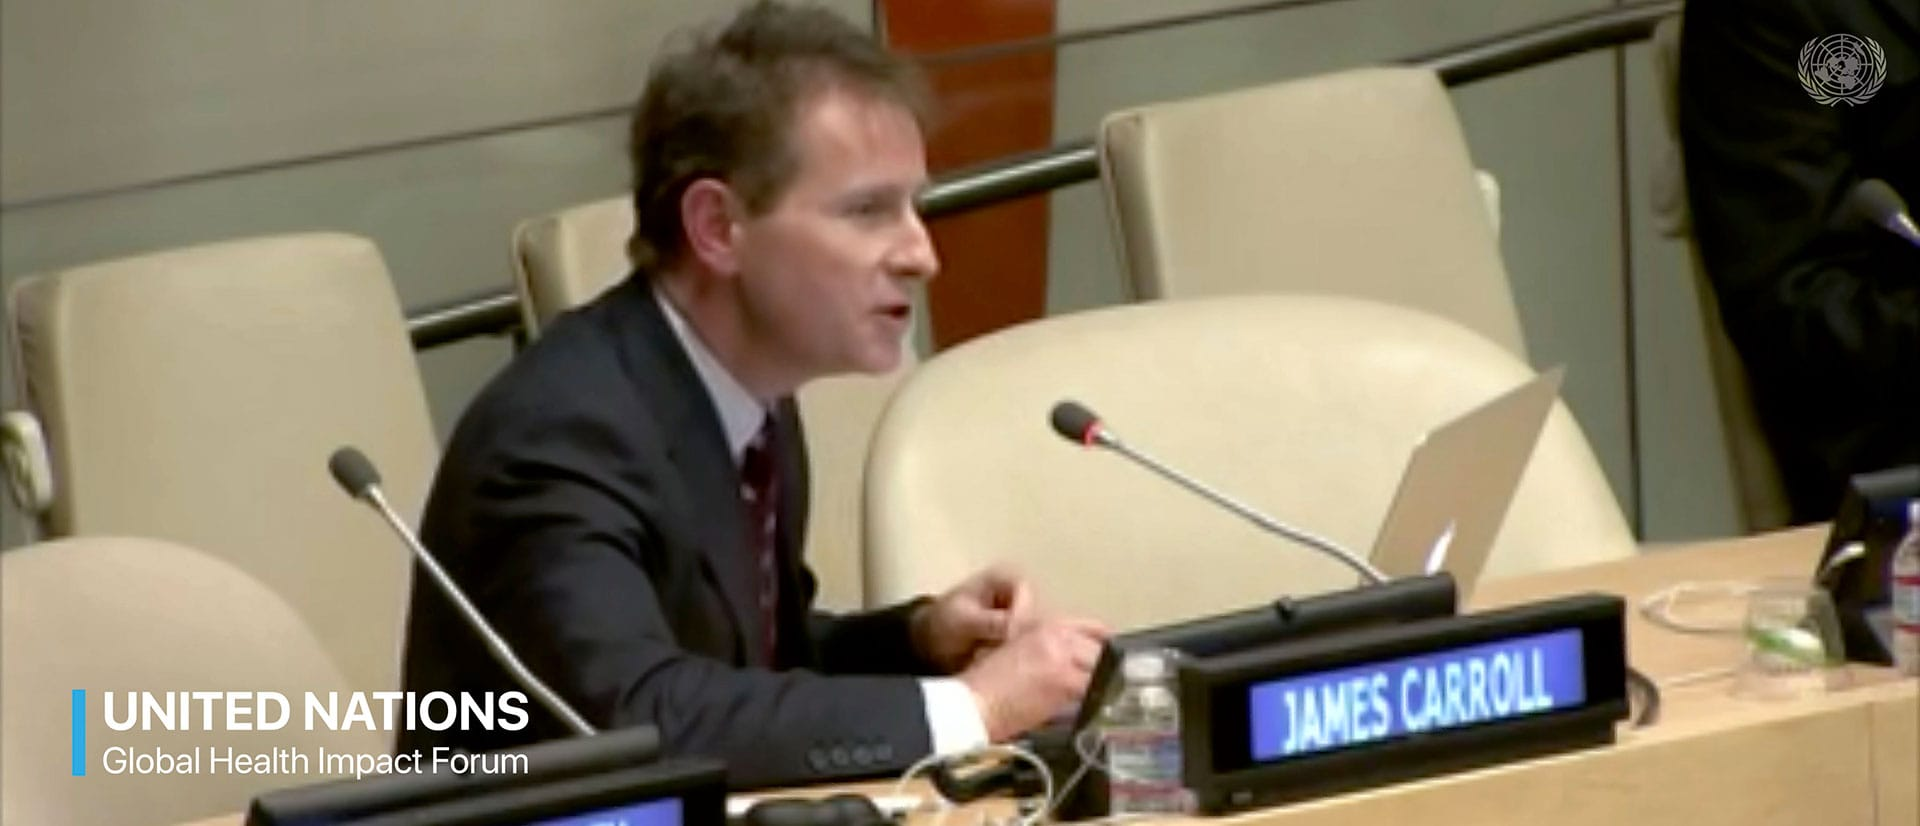 James Carroll addressing the United Nations Global Health Impact Forum about the uses of Photobiomodulation